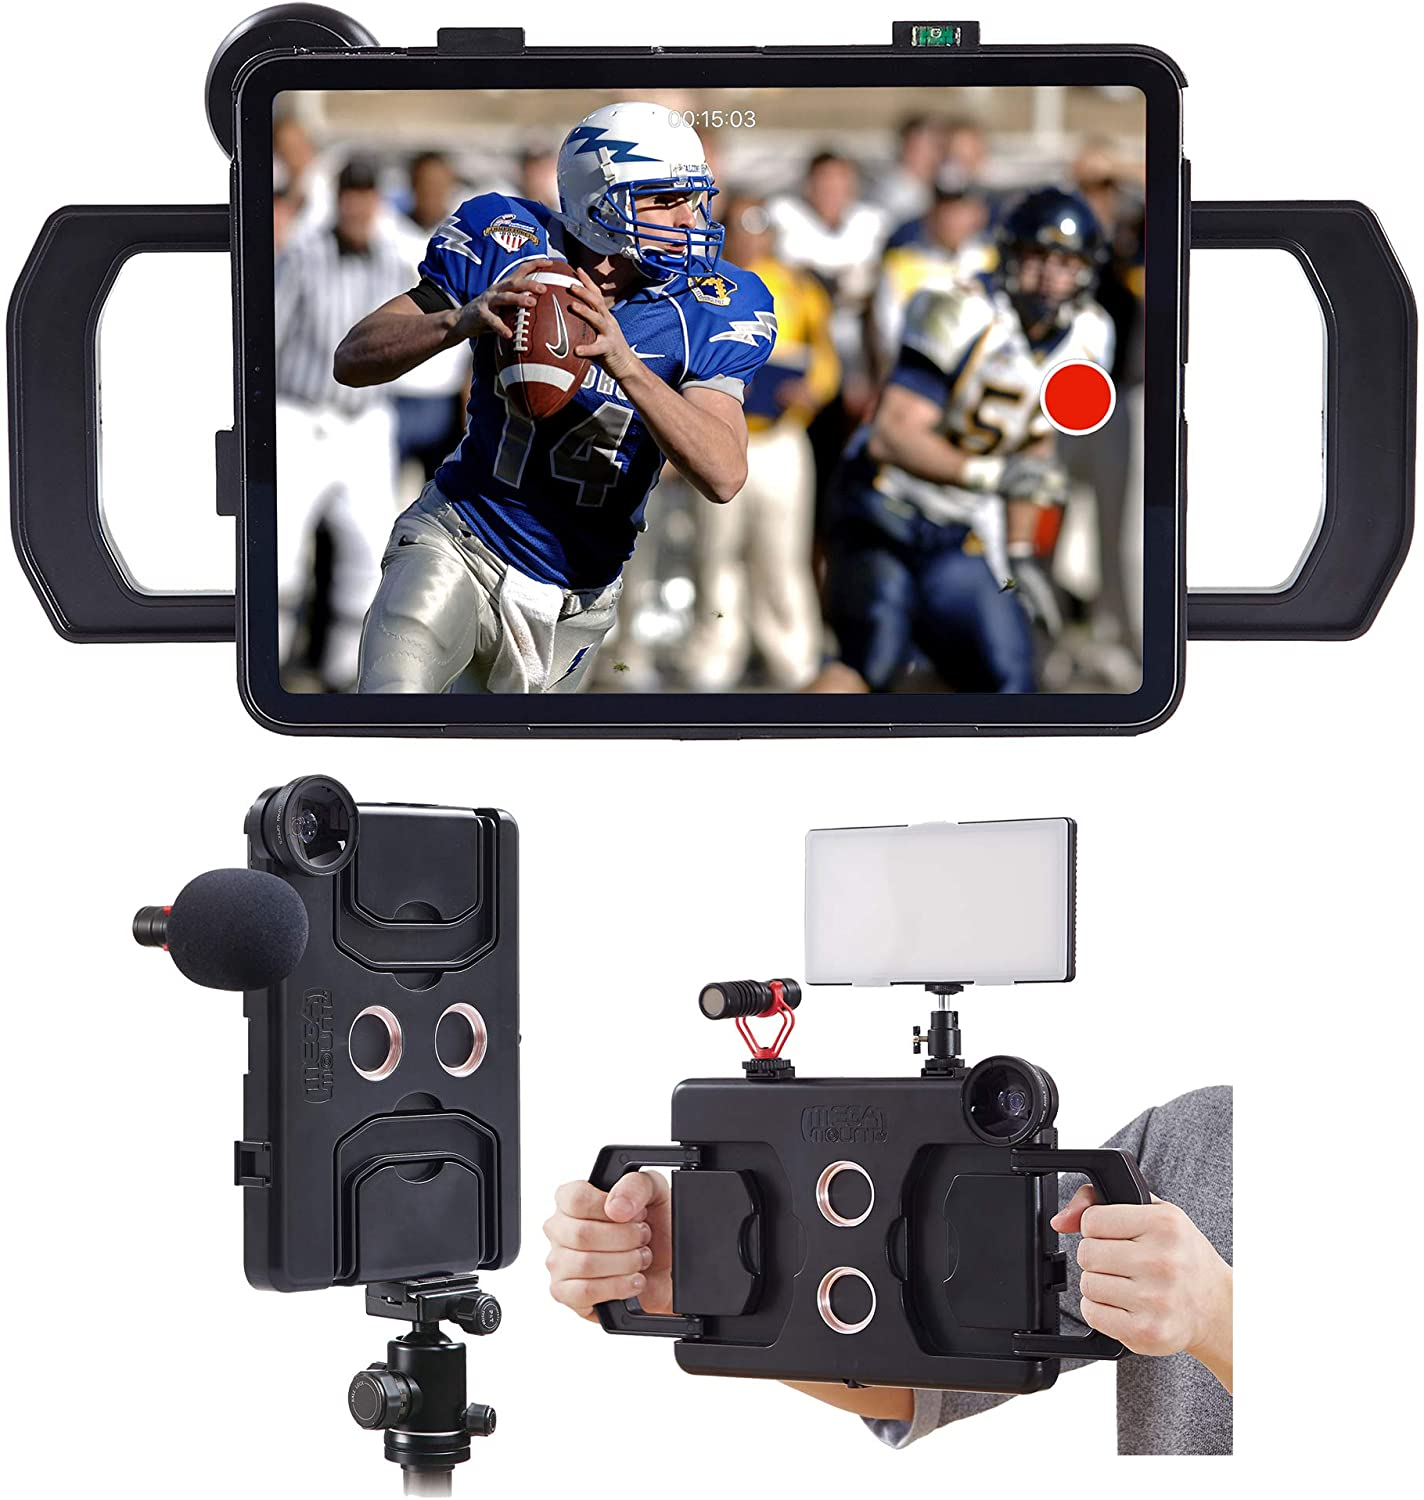 Great for Video Recording MegaMount Multimedia Rig Case Video stabilizer for Apple iPad Pro 12.9 inch Current 3rd Gen Only Lights Easily Attach Lenses Mounts on Tripods and Monopods Microphones